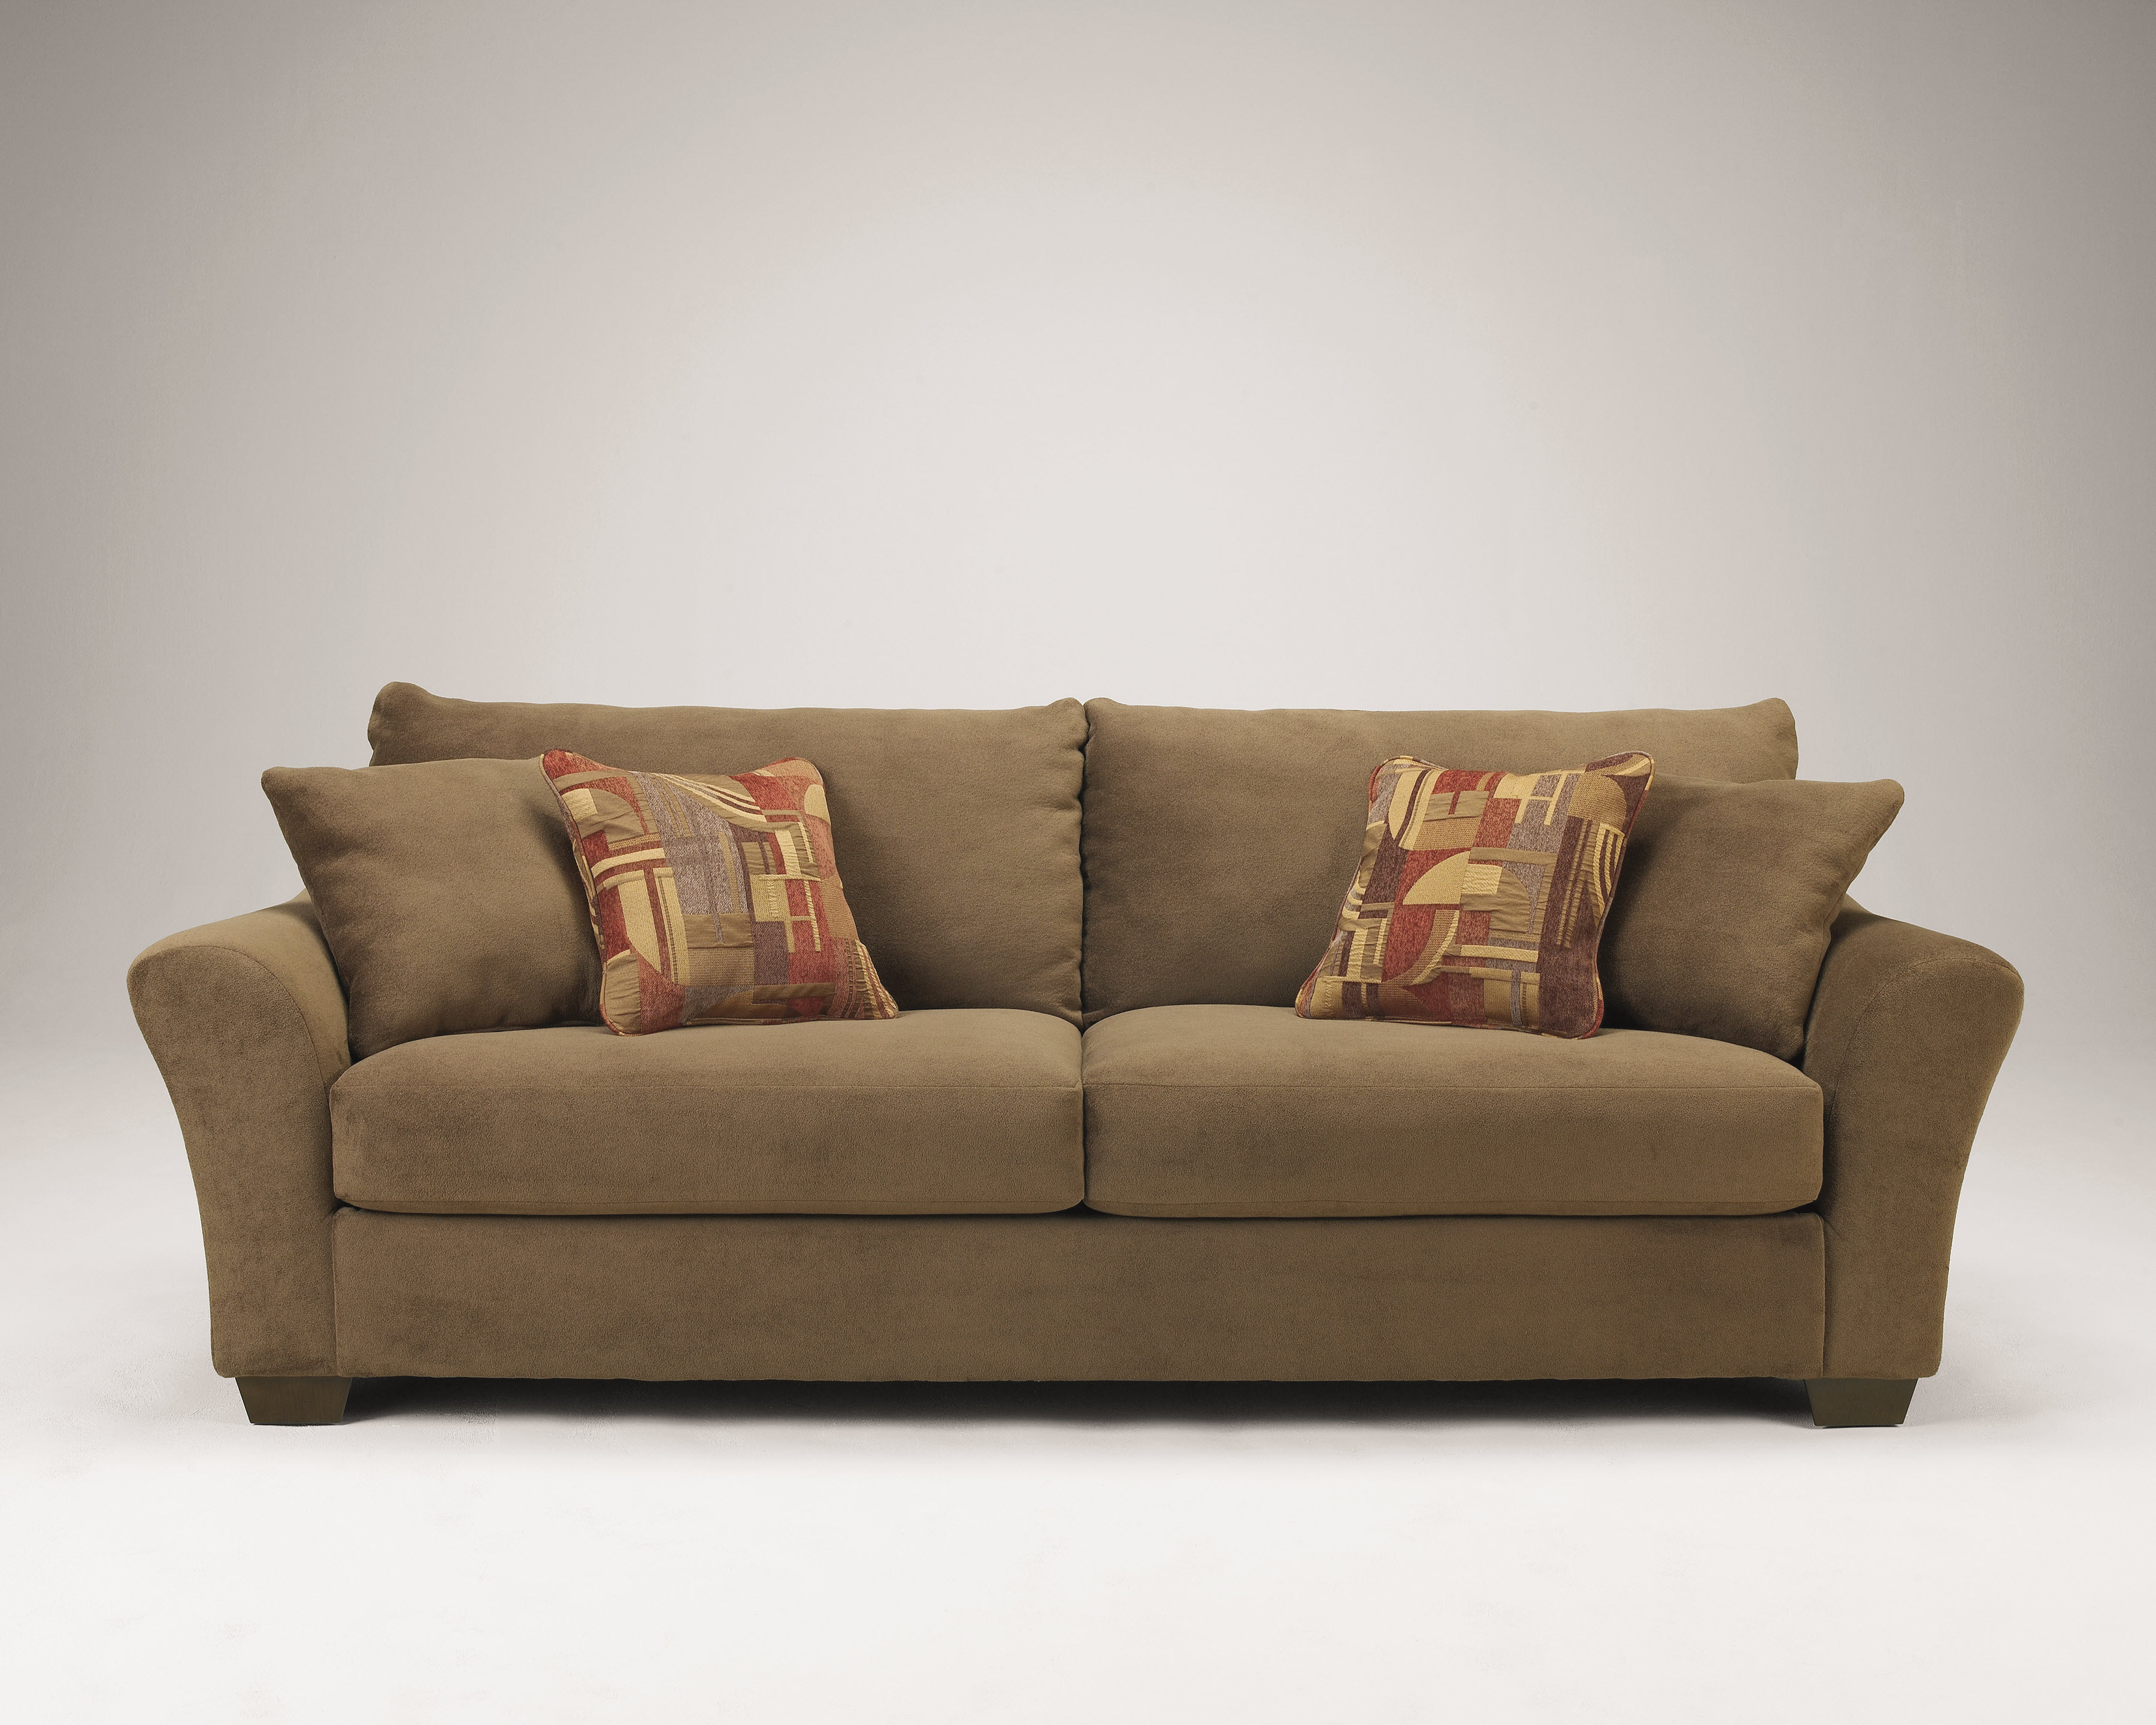 new cheap sofas for sale design-Amazing Cheap sofas for Sale Layout